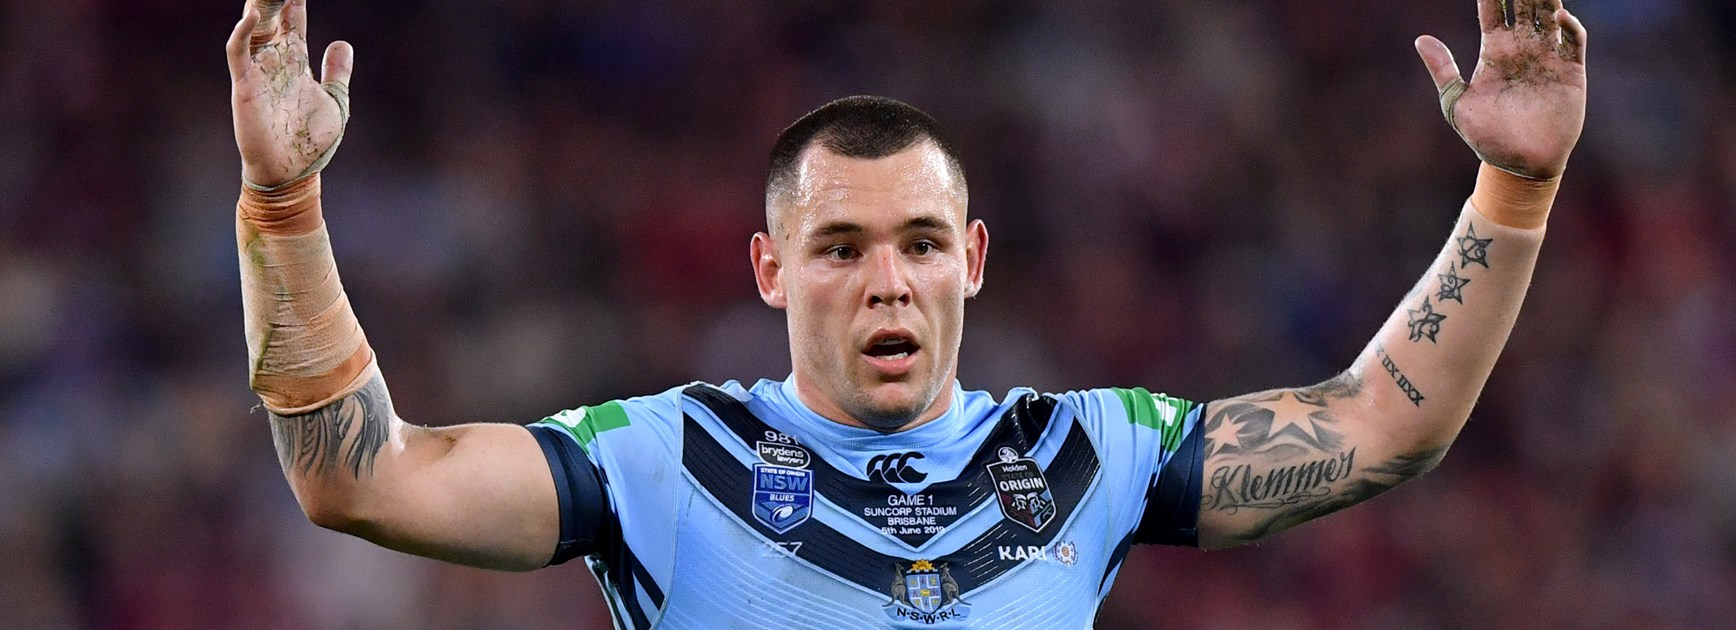 Fast-healing Klemmer on track to return for Origin III